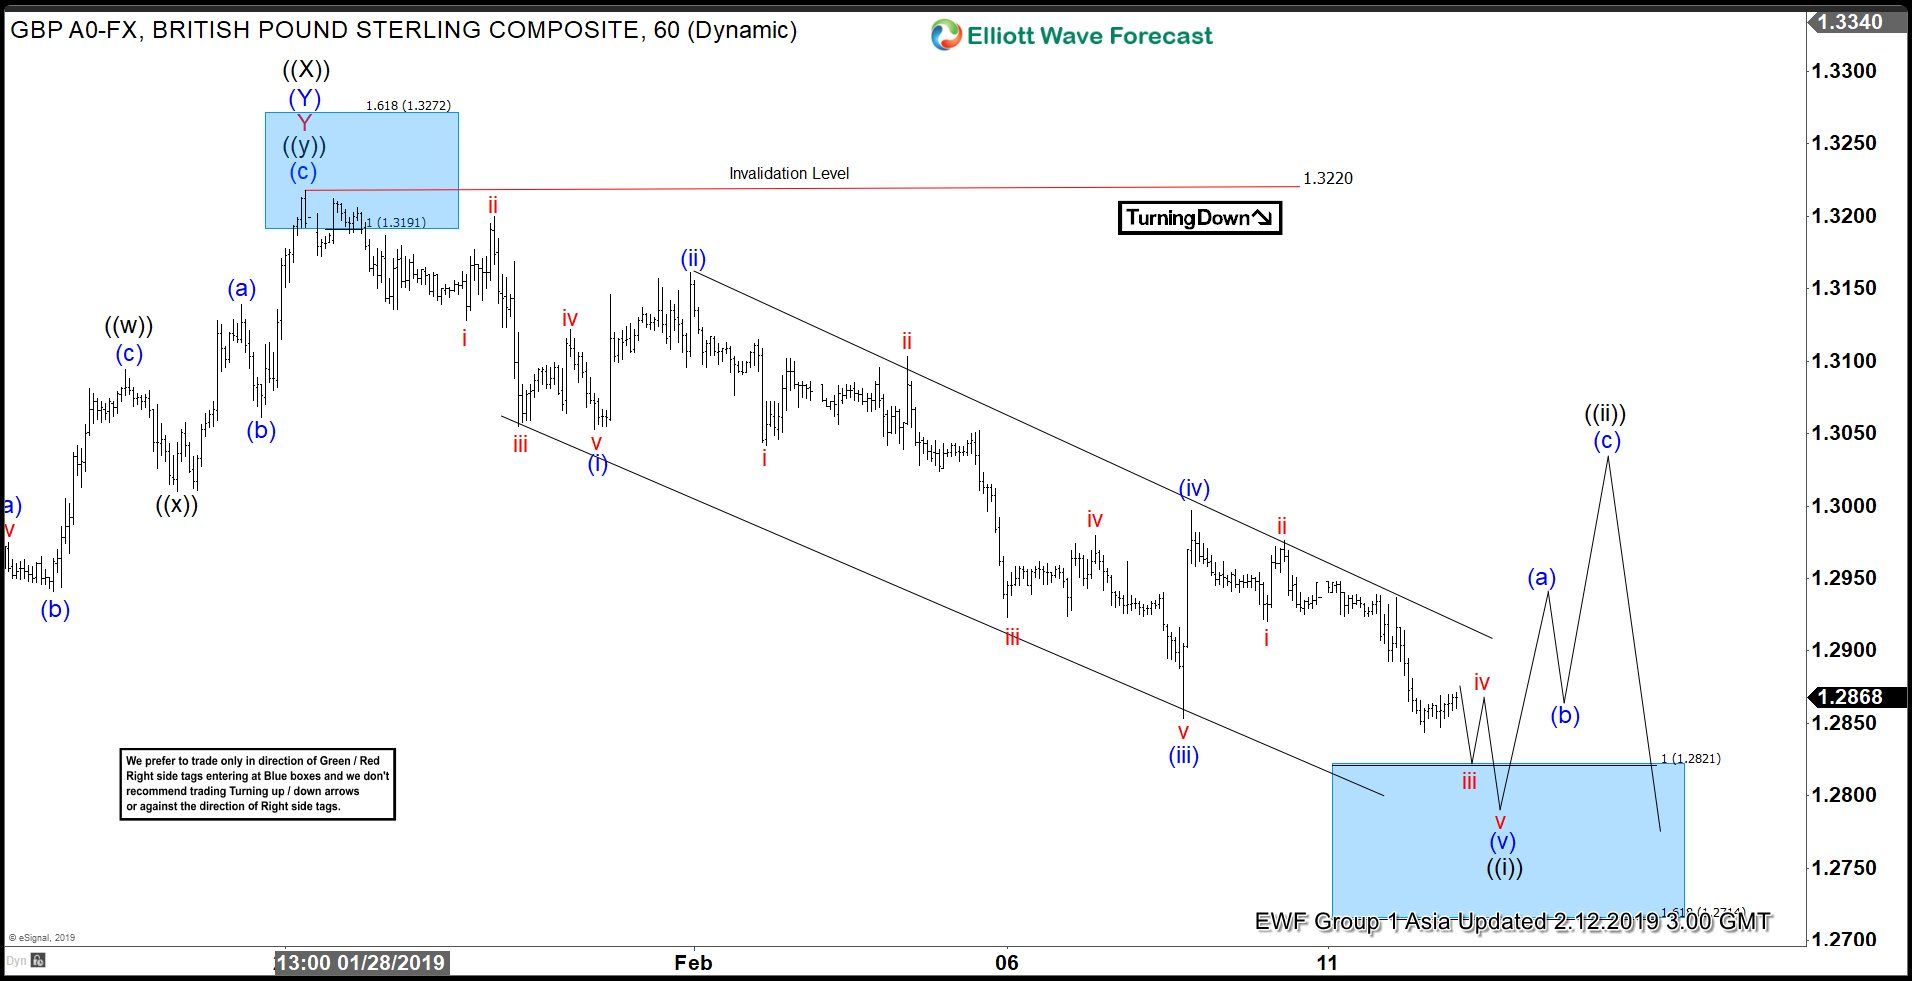 Elliott Wave View Favors More Downside in GBPUSD